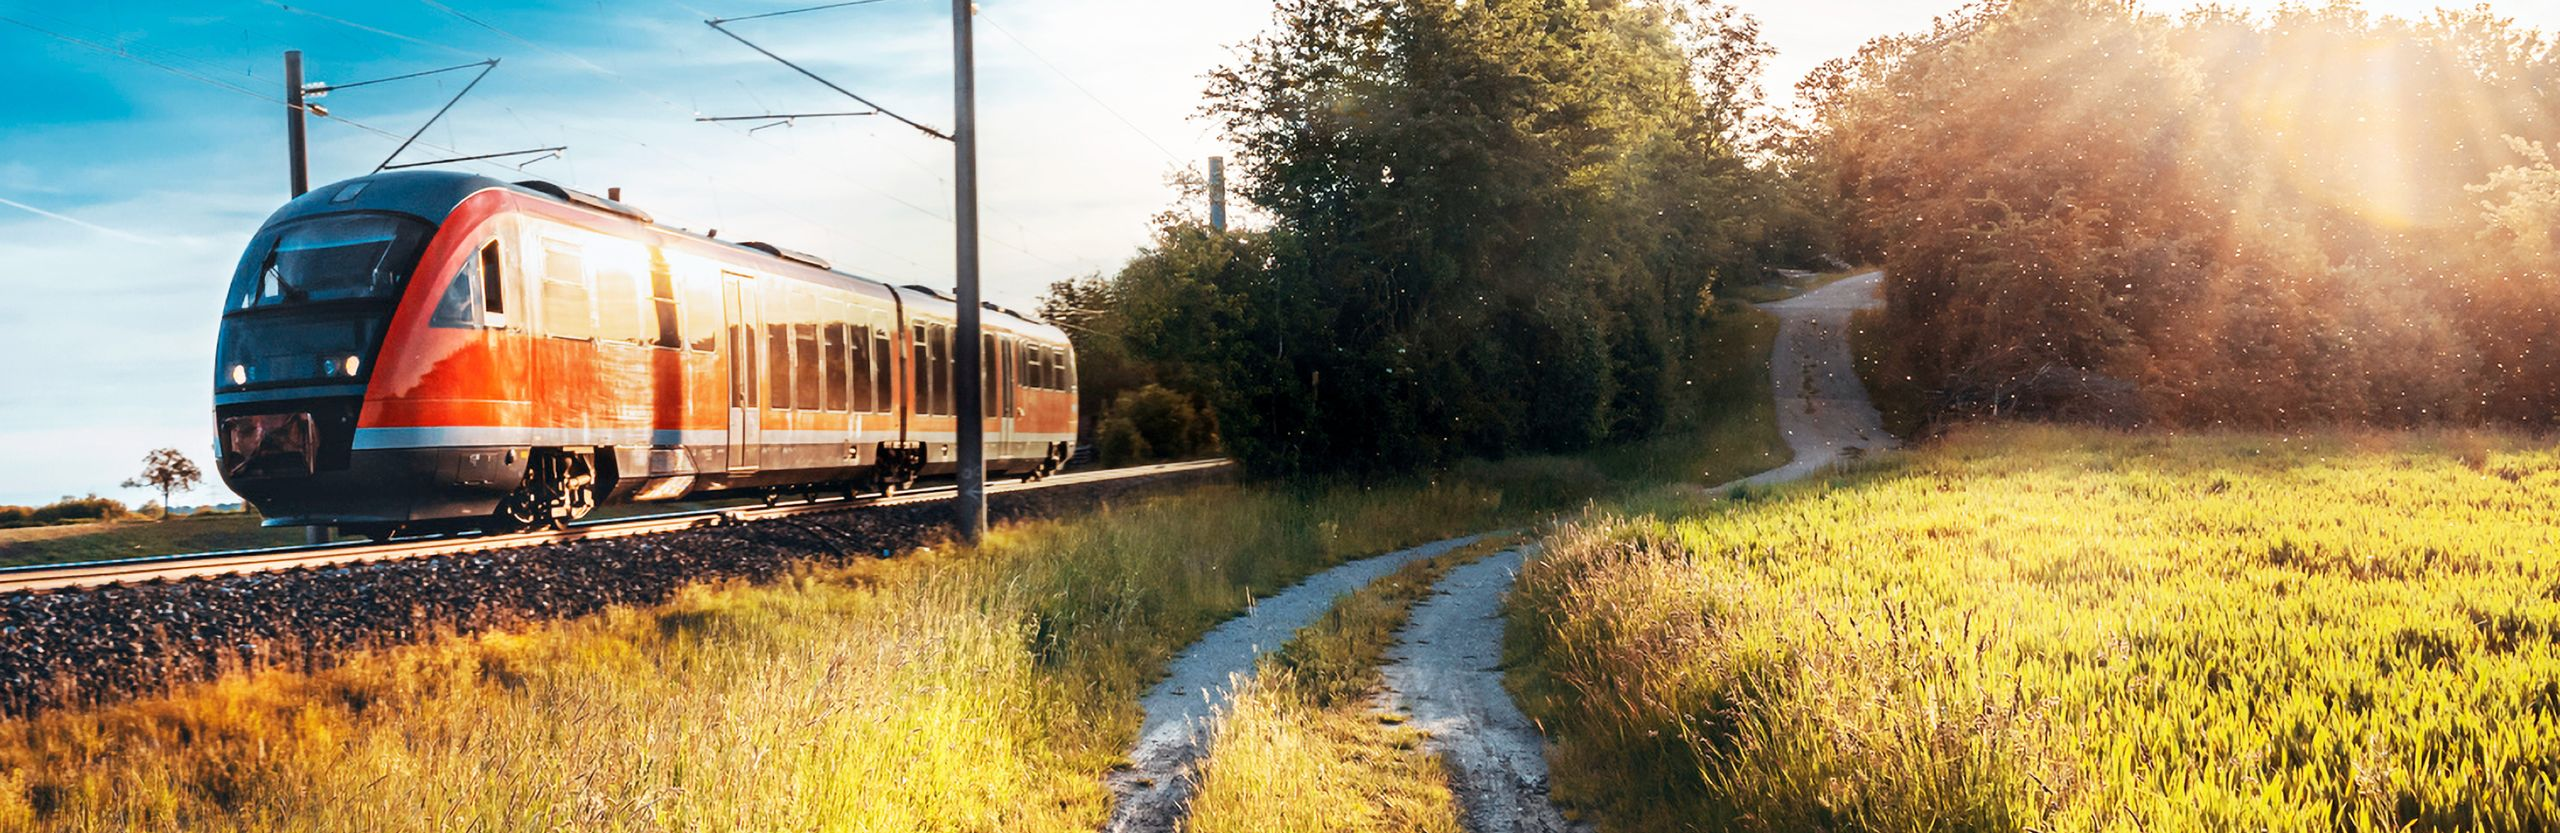 Picture of a locomotive passing through train tracks in a prairie landscape